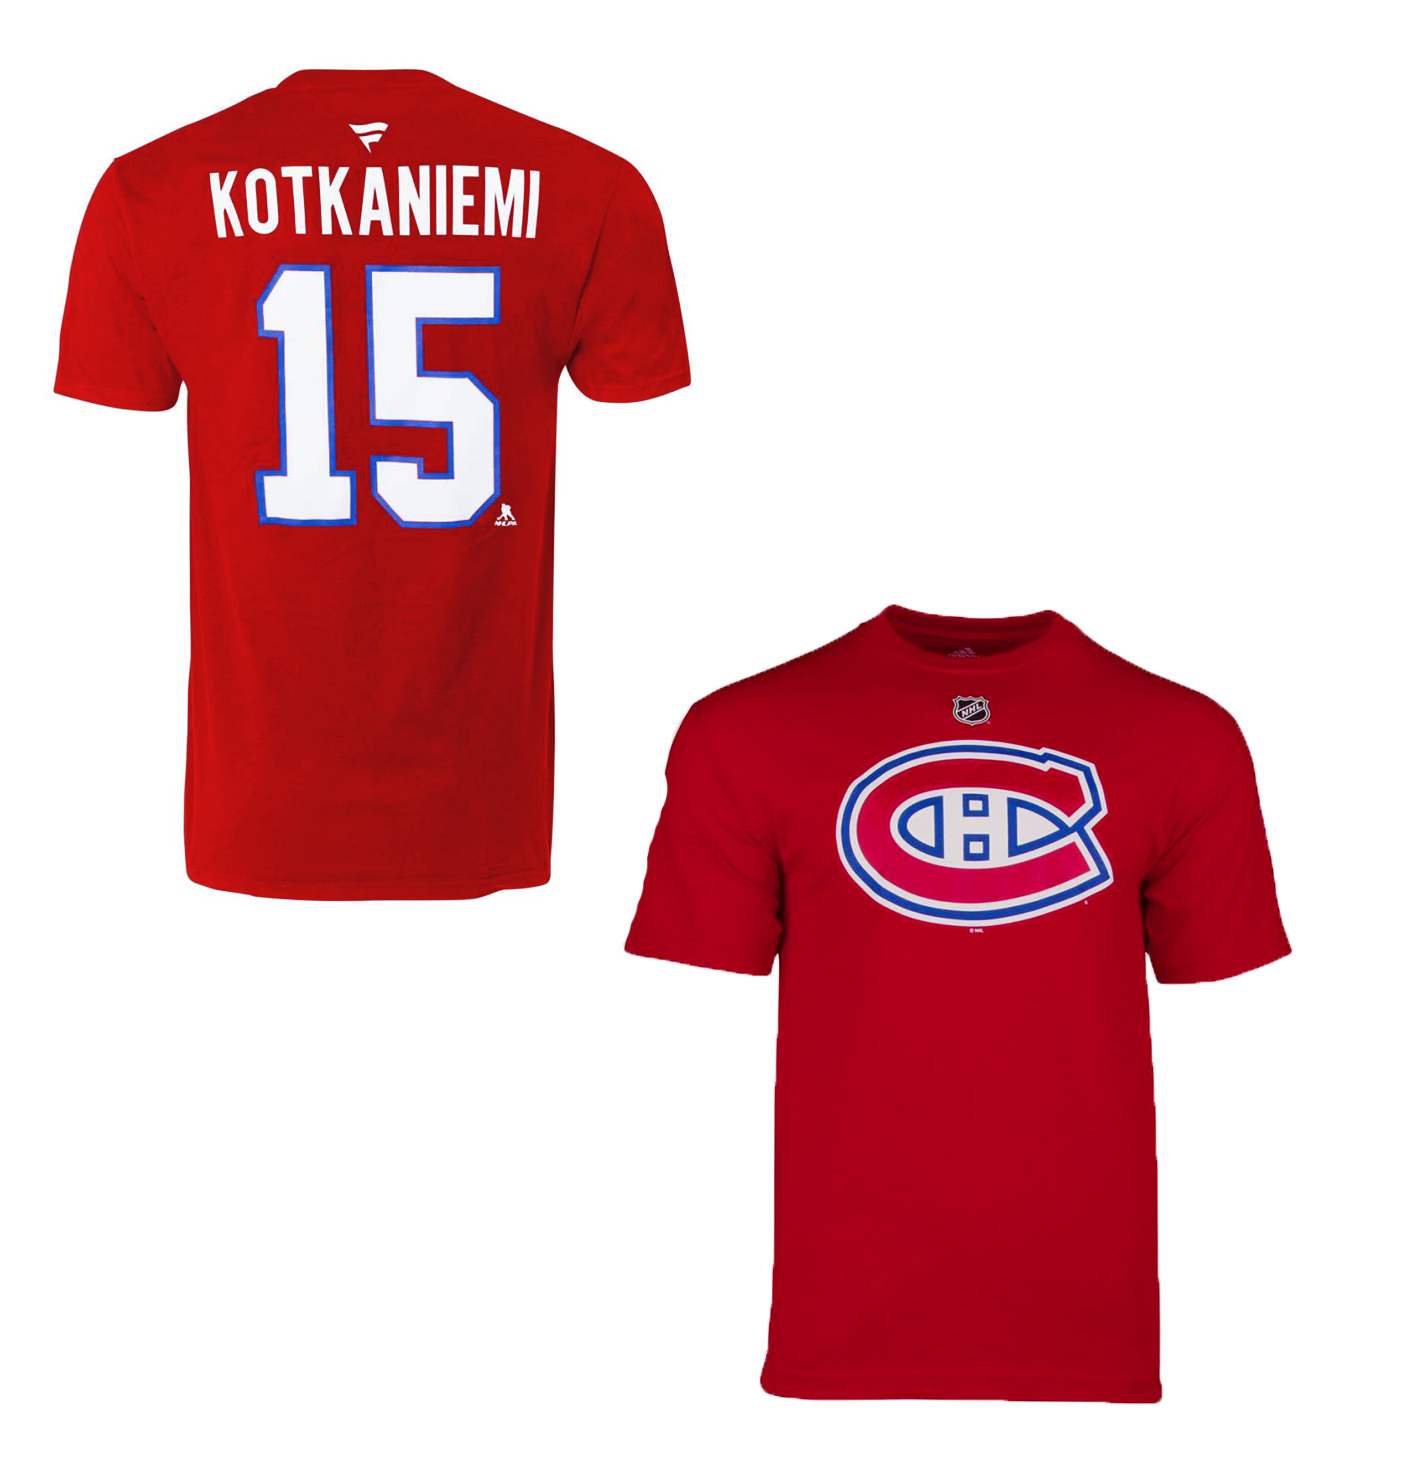 MONTREAL CANADIENS -  JESPERI KOTKANIEMI #15 T-SHIRT - RED